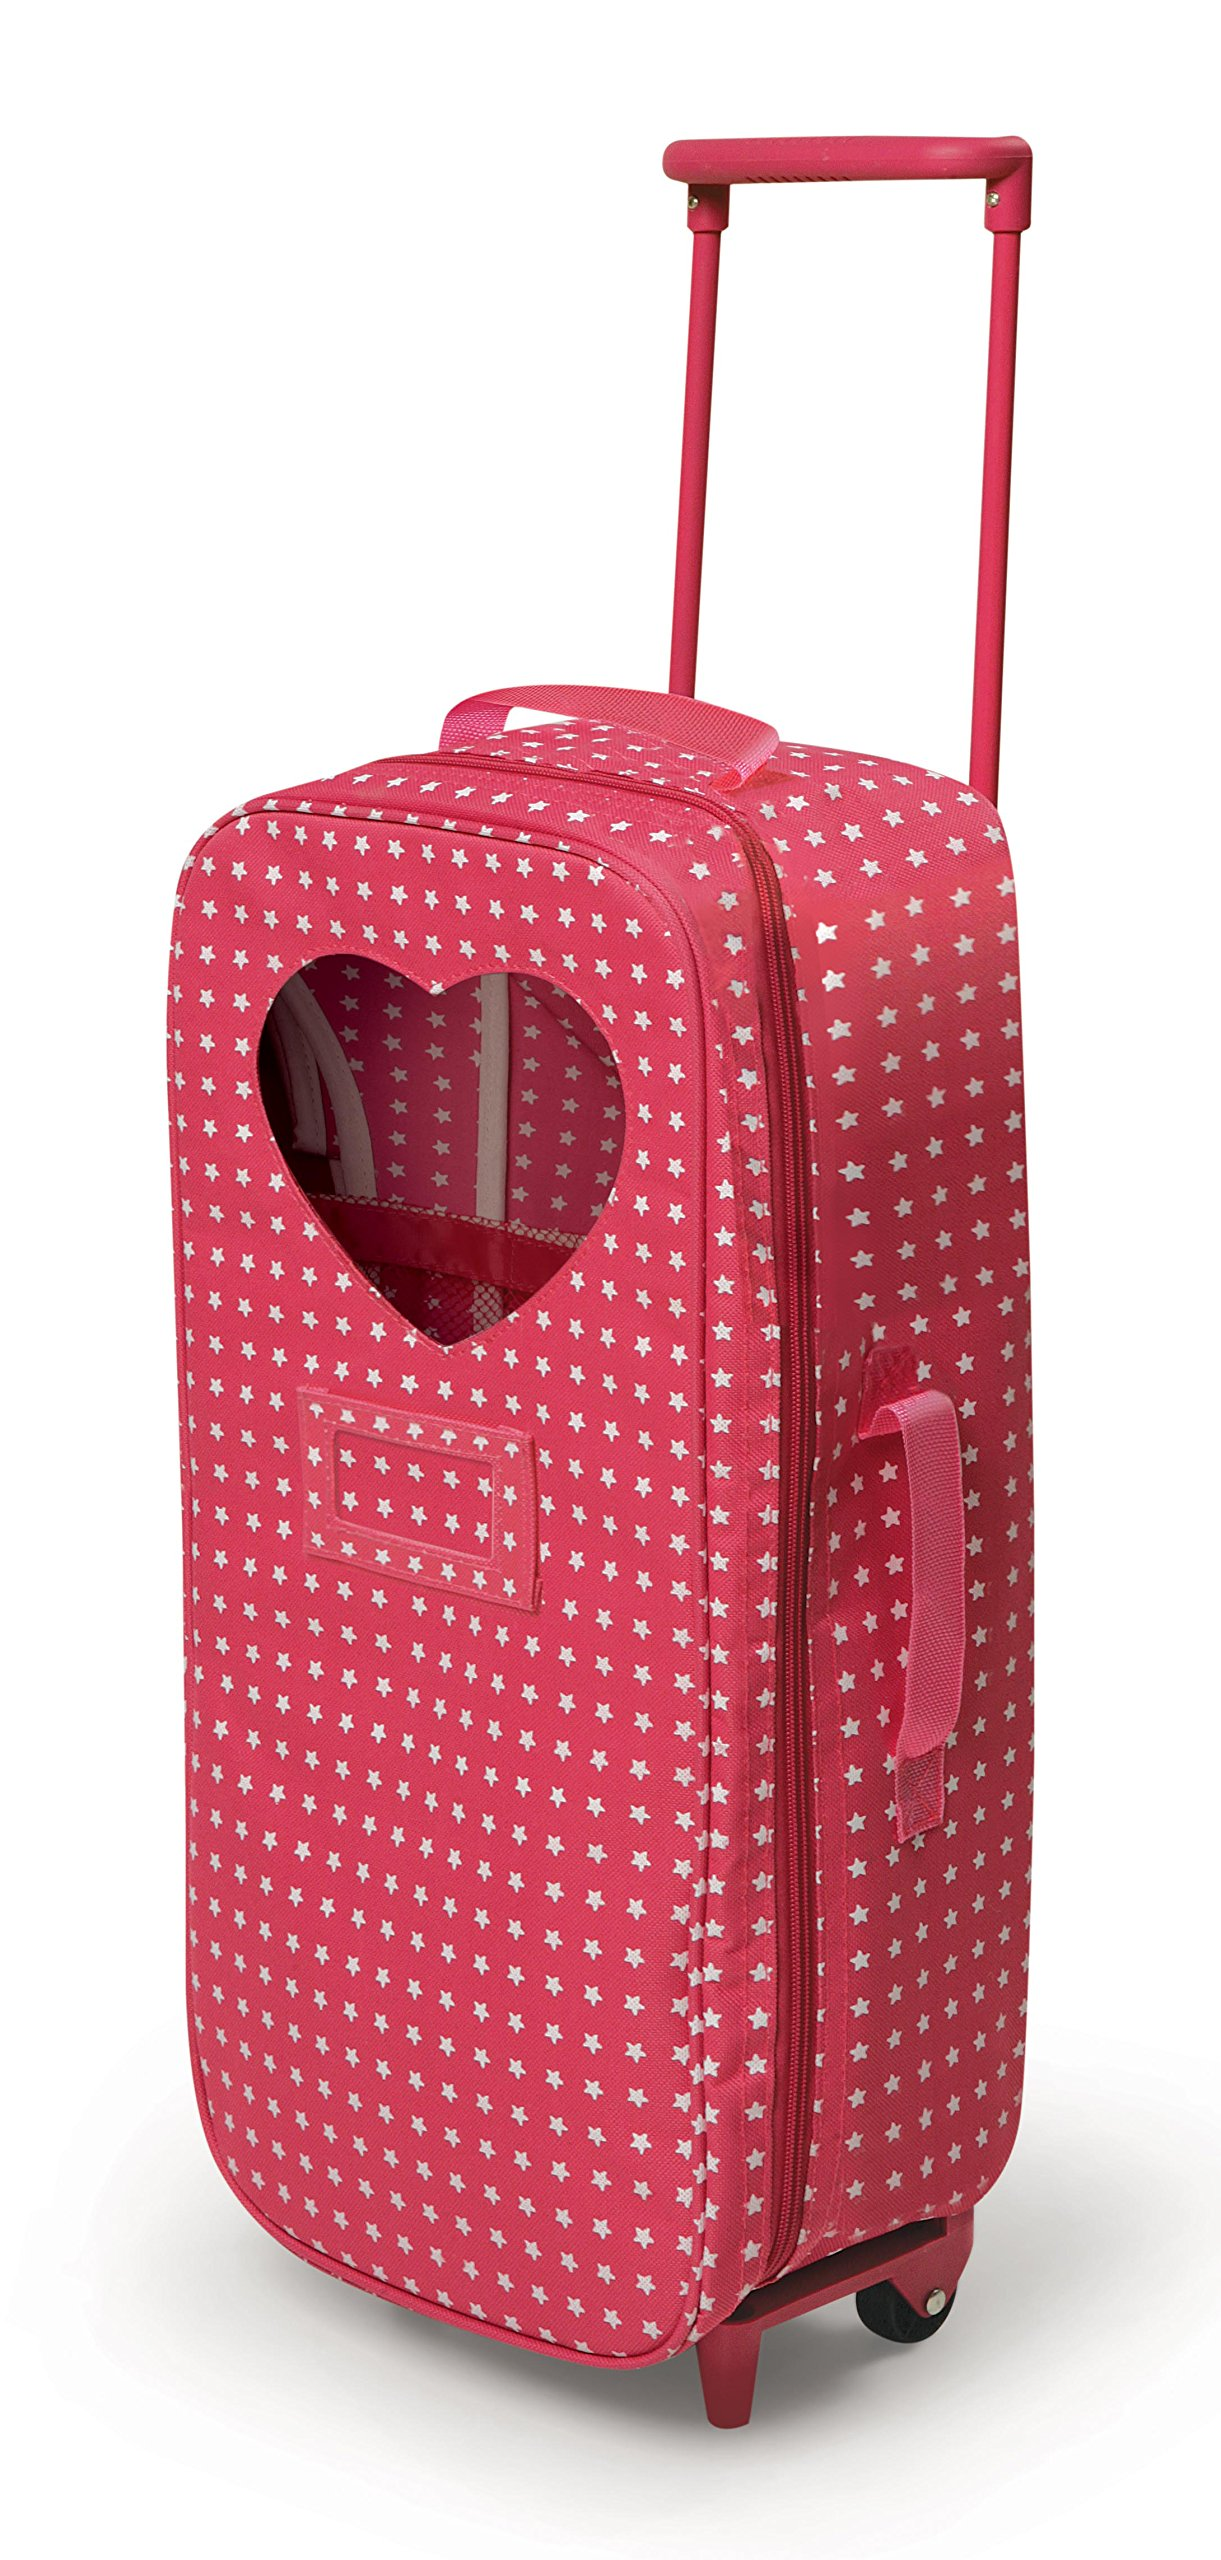 Badger Basket Trolley Doll Travel Case With Rocking Bed Fits American Girl Dolls Star Pattern